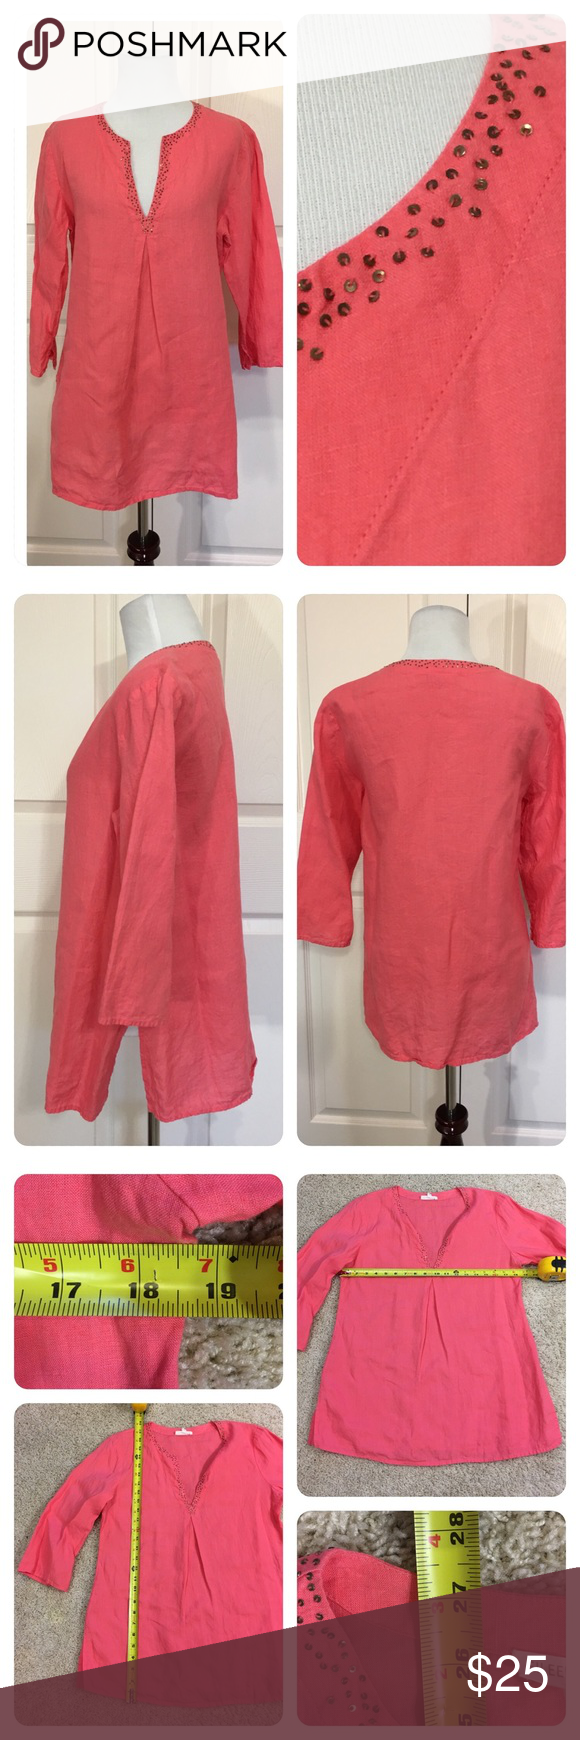 """Eileen Fisher linen tunic Irish linen coral tunic from Eileen Fisher. Beaded collar. Two small """"linen snags"""" as shown on last pic. Price reduced. Eileen Fisher Tops"""